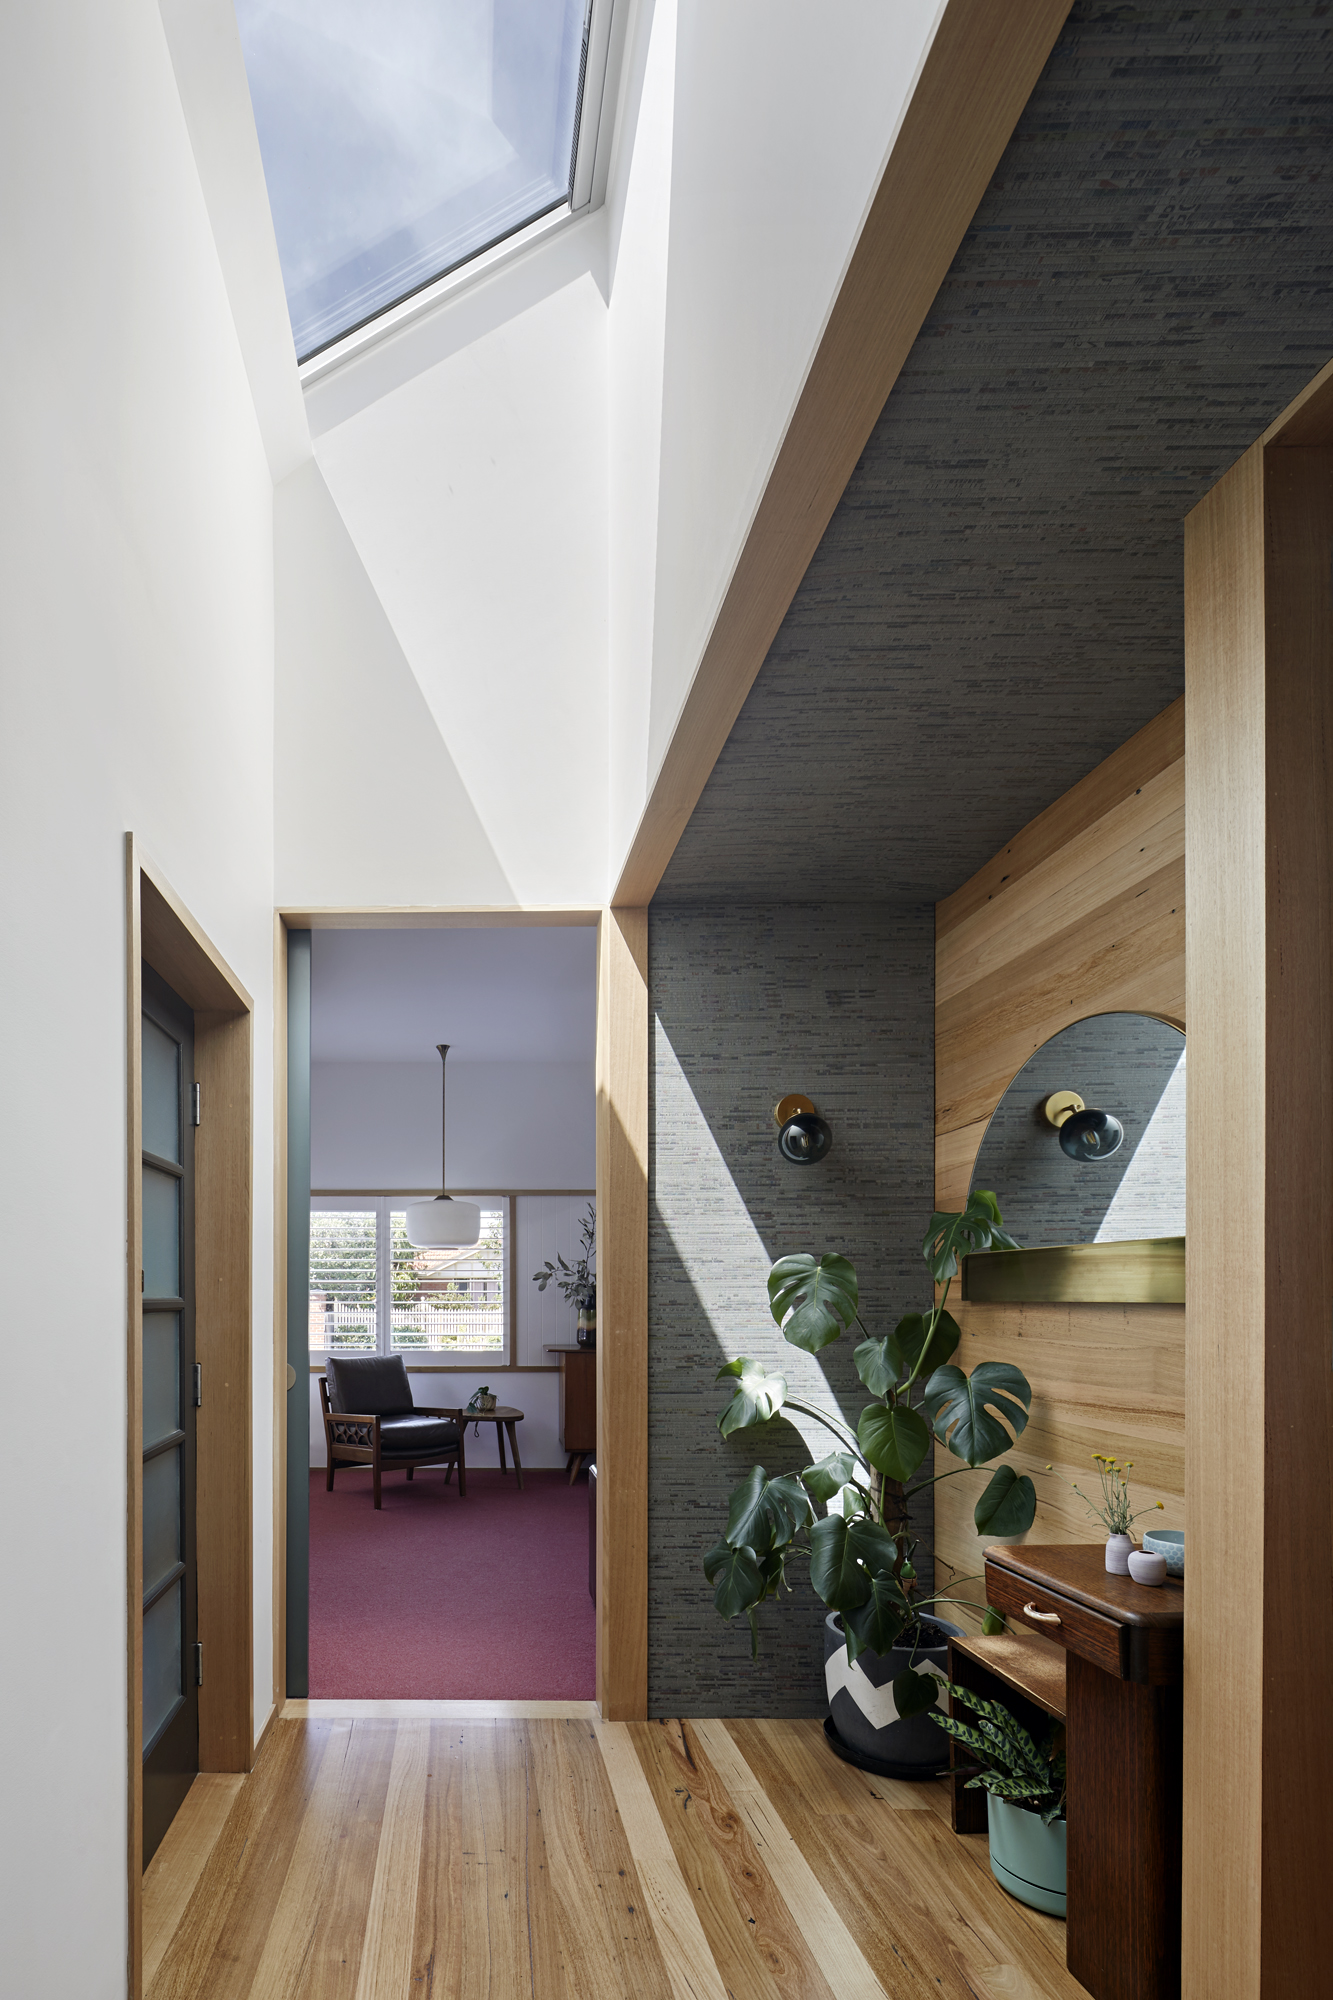 Bent Annexe Adds Additional Living Space To A 1960s Home With A Lot Of Charm, While Also Reconnecting It To The Garde